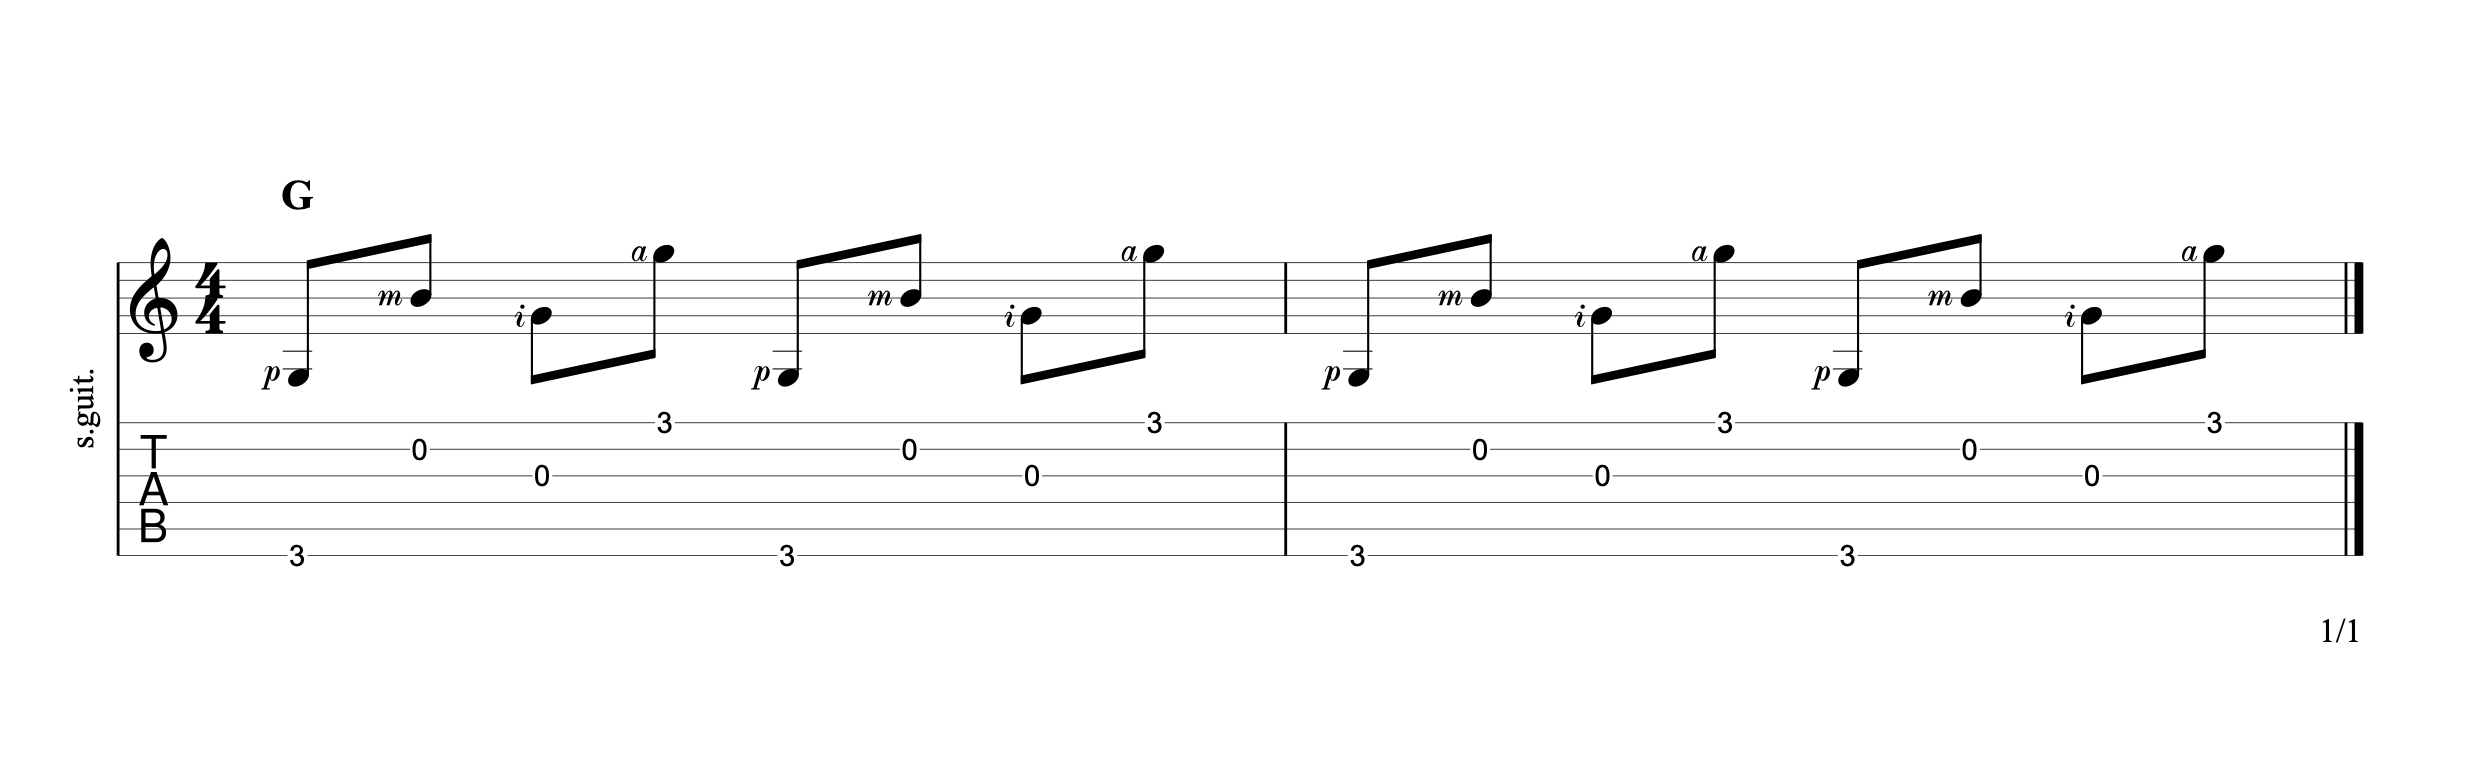 Fingerpicking Chords p7